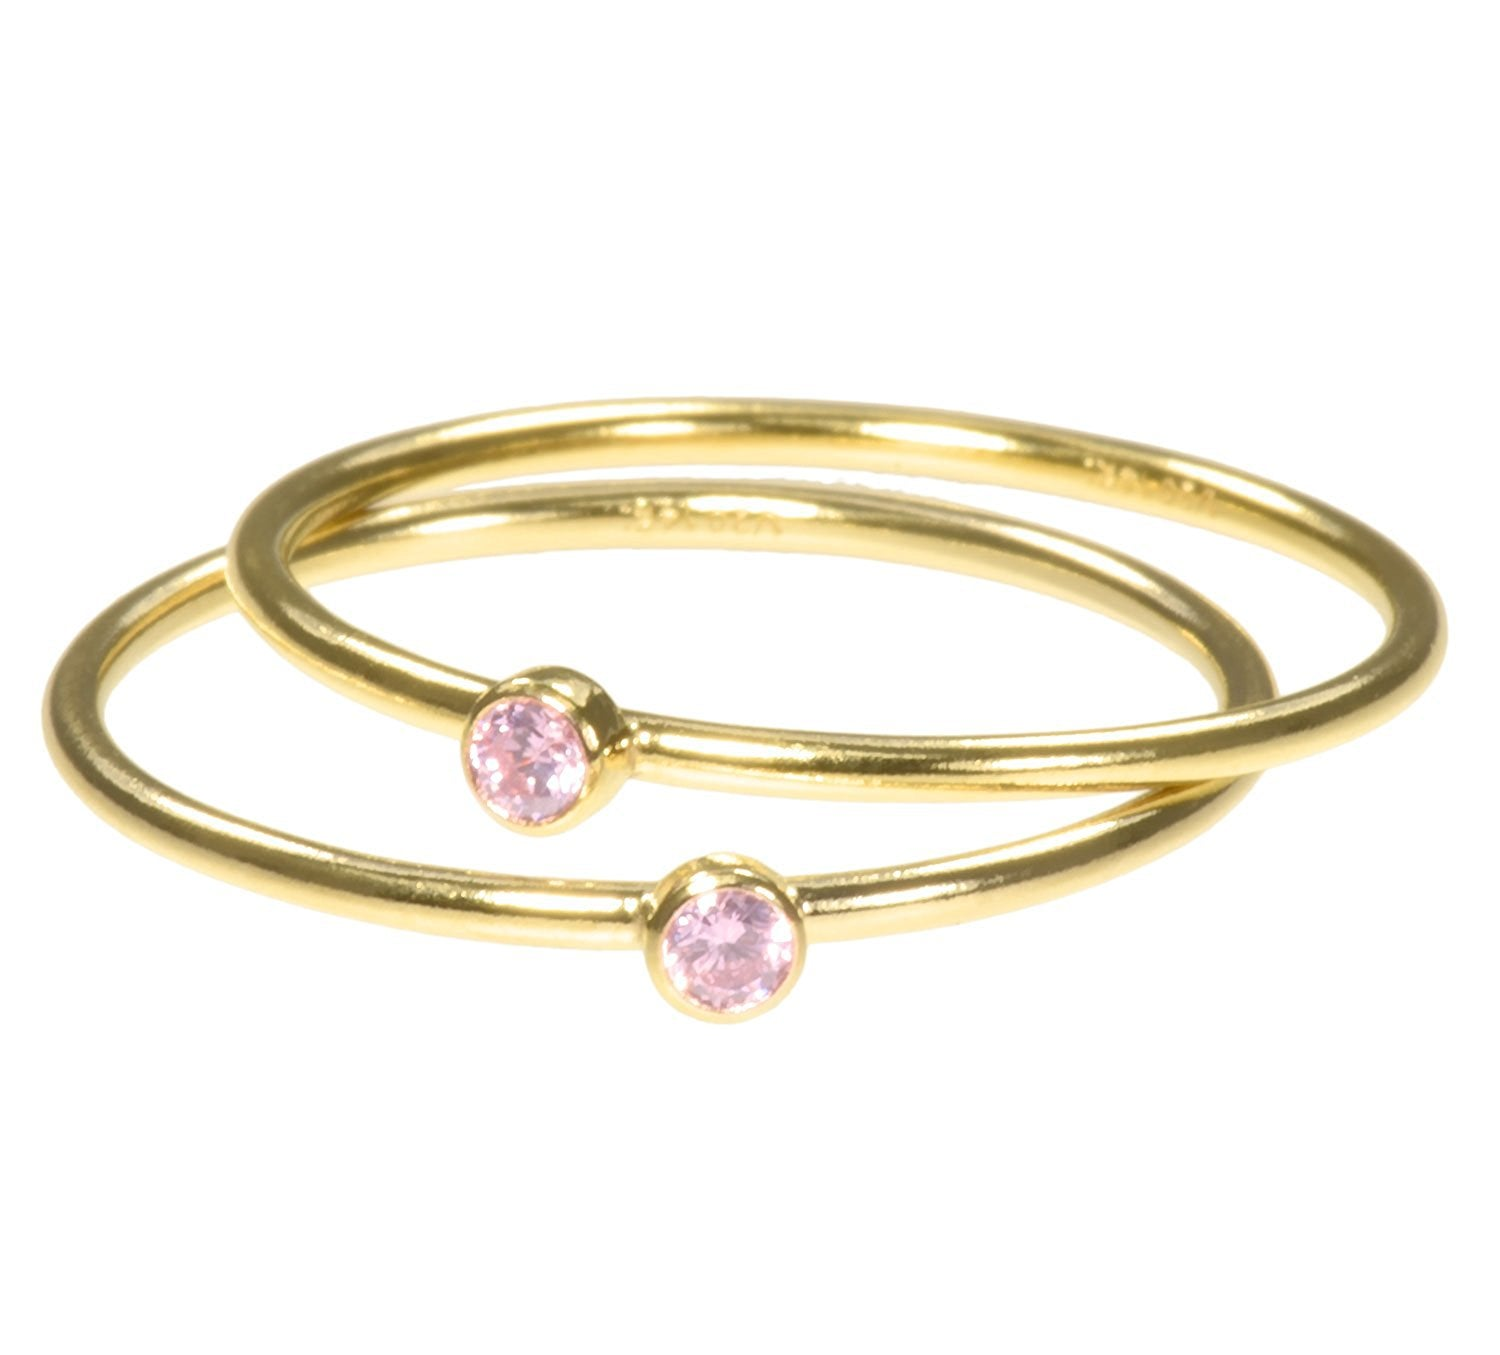 uGems 2 14K Gold Filled Pink CZ Stacking Rings Size 7